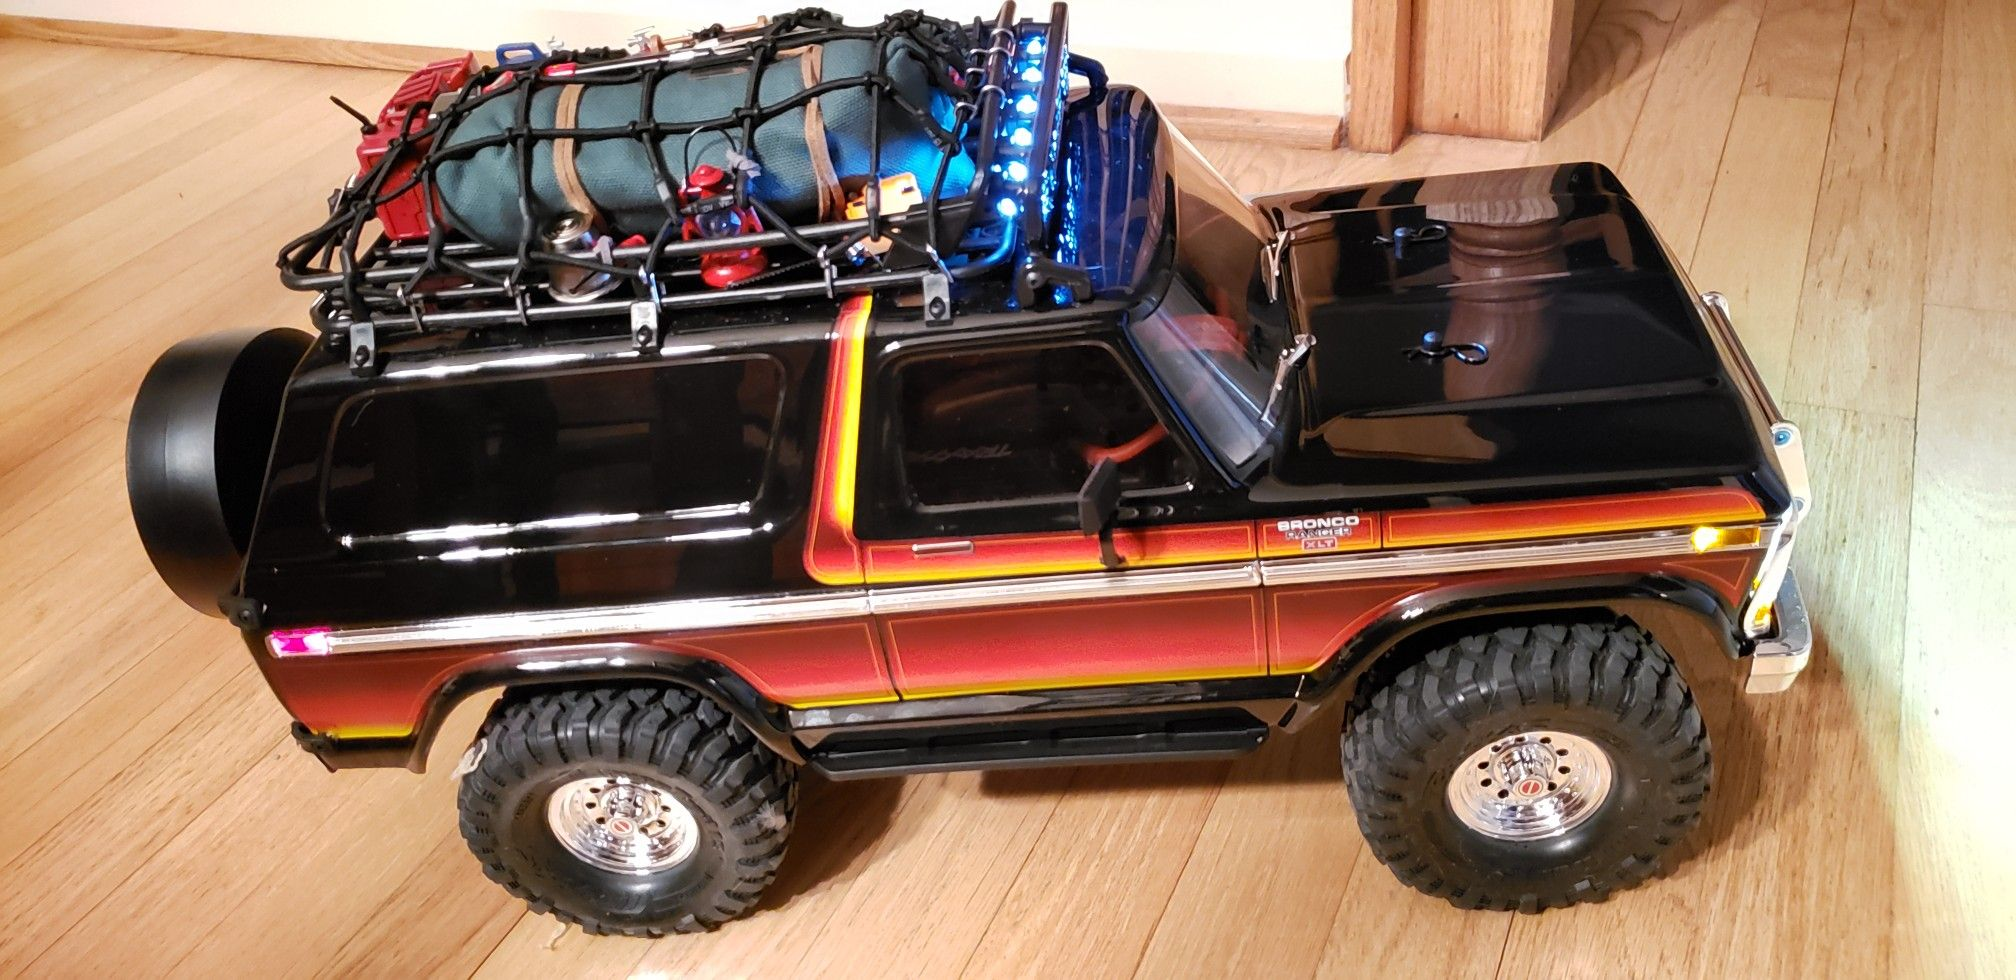 Traxxas Trx4 Ford Bronco With Roof Rack Cargo Net Roof Mount Light Bar And Many 1 10 Scale Accessories As Going Super S Ford Bronco Traxxas 1979 Ford Bronco